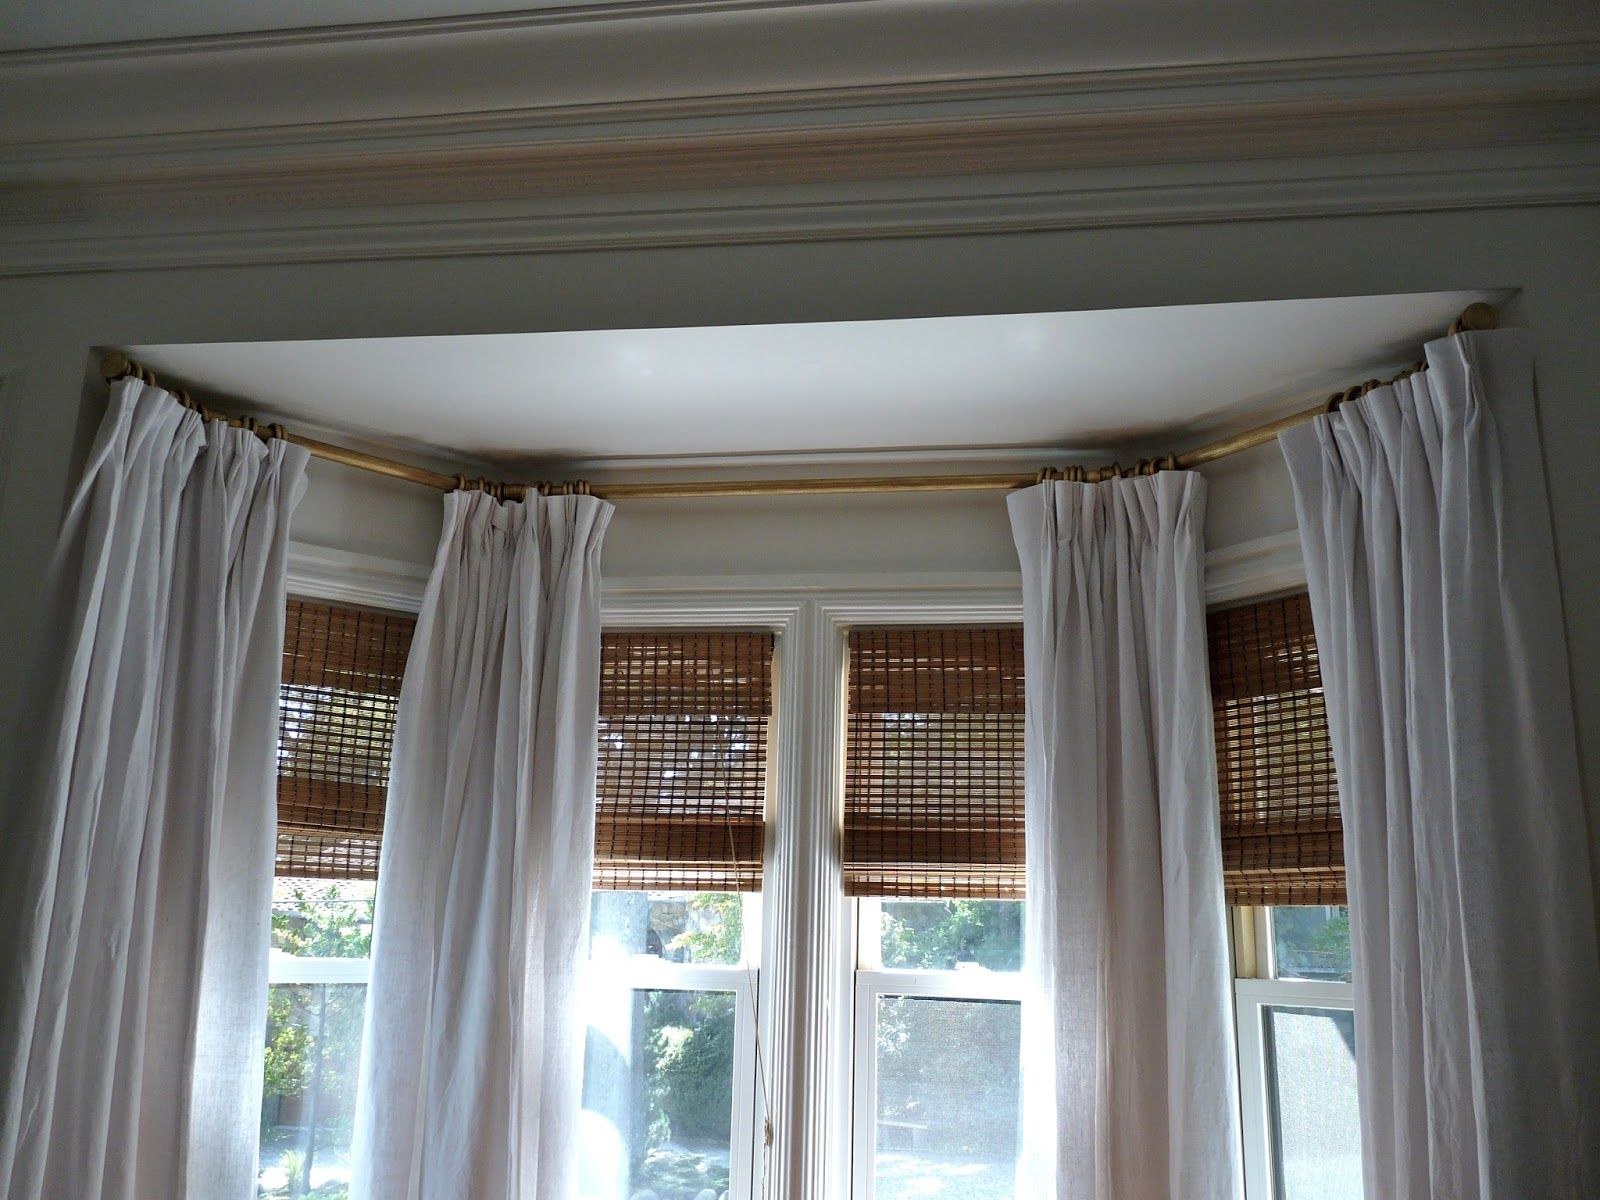 Ideas For Kitchen Window Blinds Treatment With Wood Bow CurtainsWindows